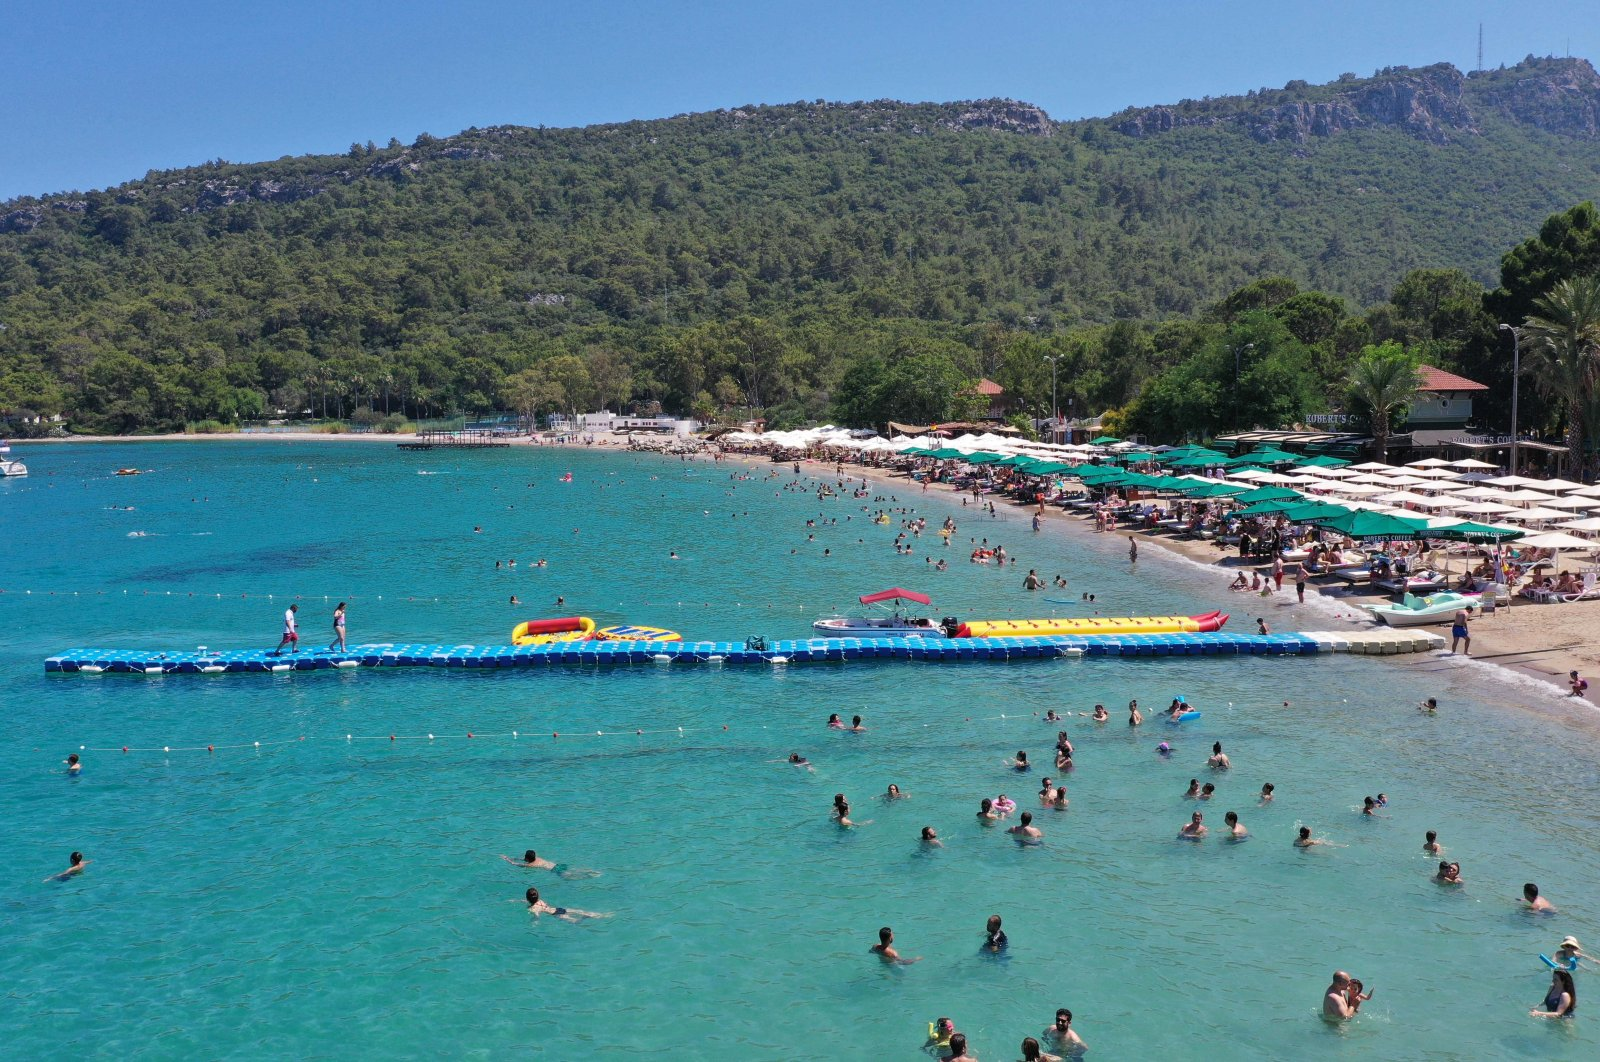 Holidaymakers enjoy the sea, sun and sand at a beach at the seaside resort town of Kemer in Antalya province on Turkey's southern Mediterranean coast in this undated photo. (DHA Photo)